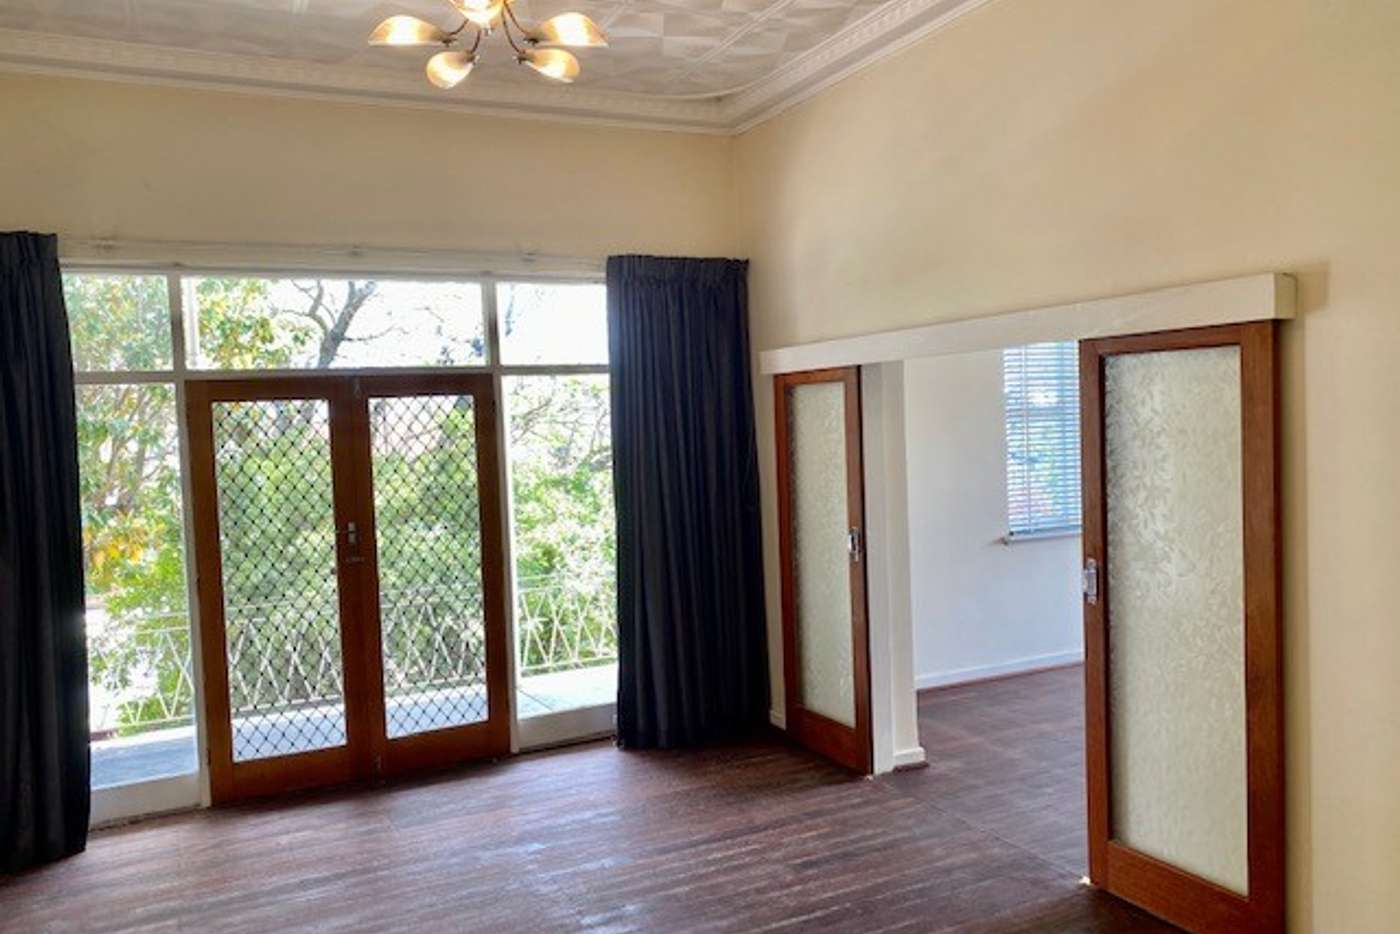 Main view of Homely house listing, 98 Northwood Street, West Leederville WA 6007